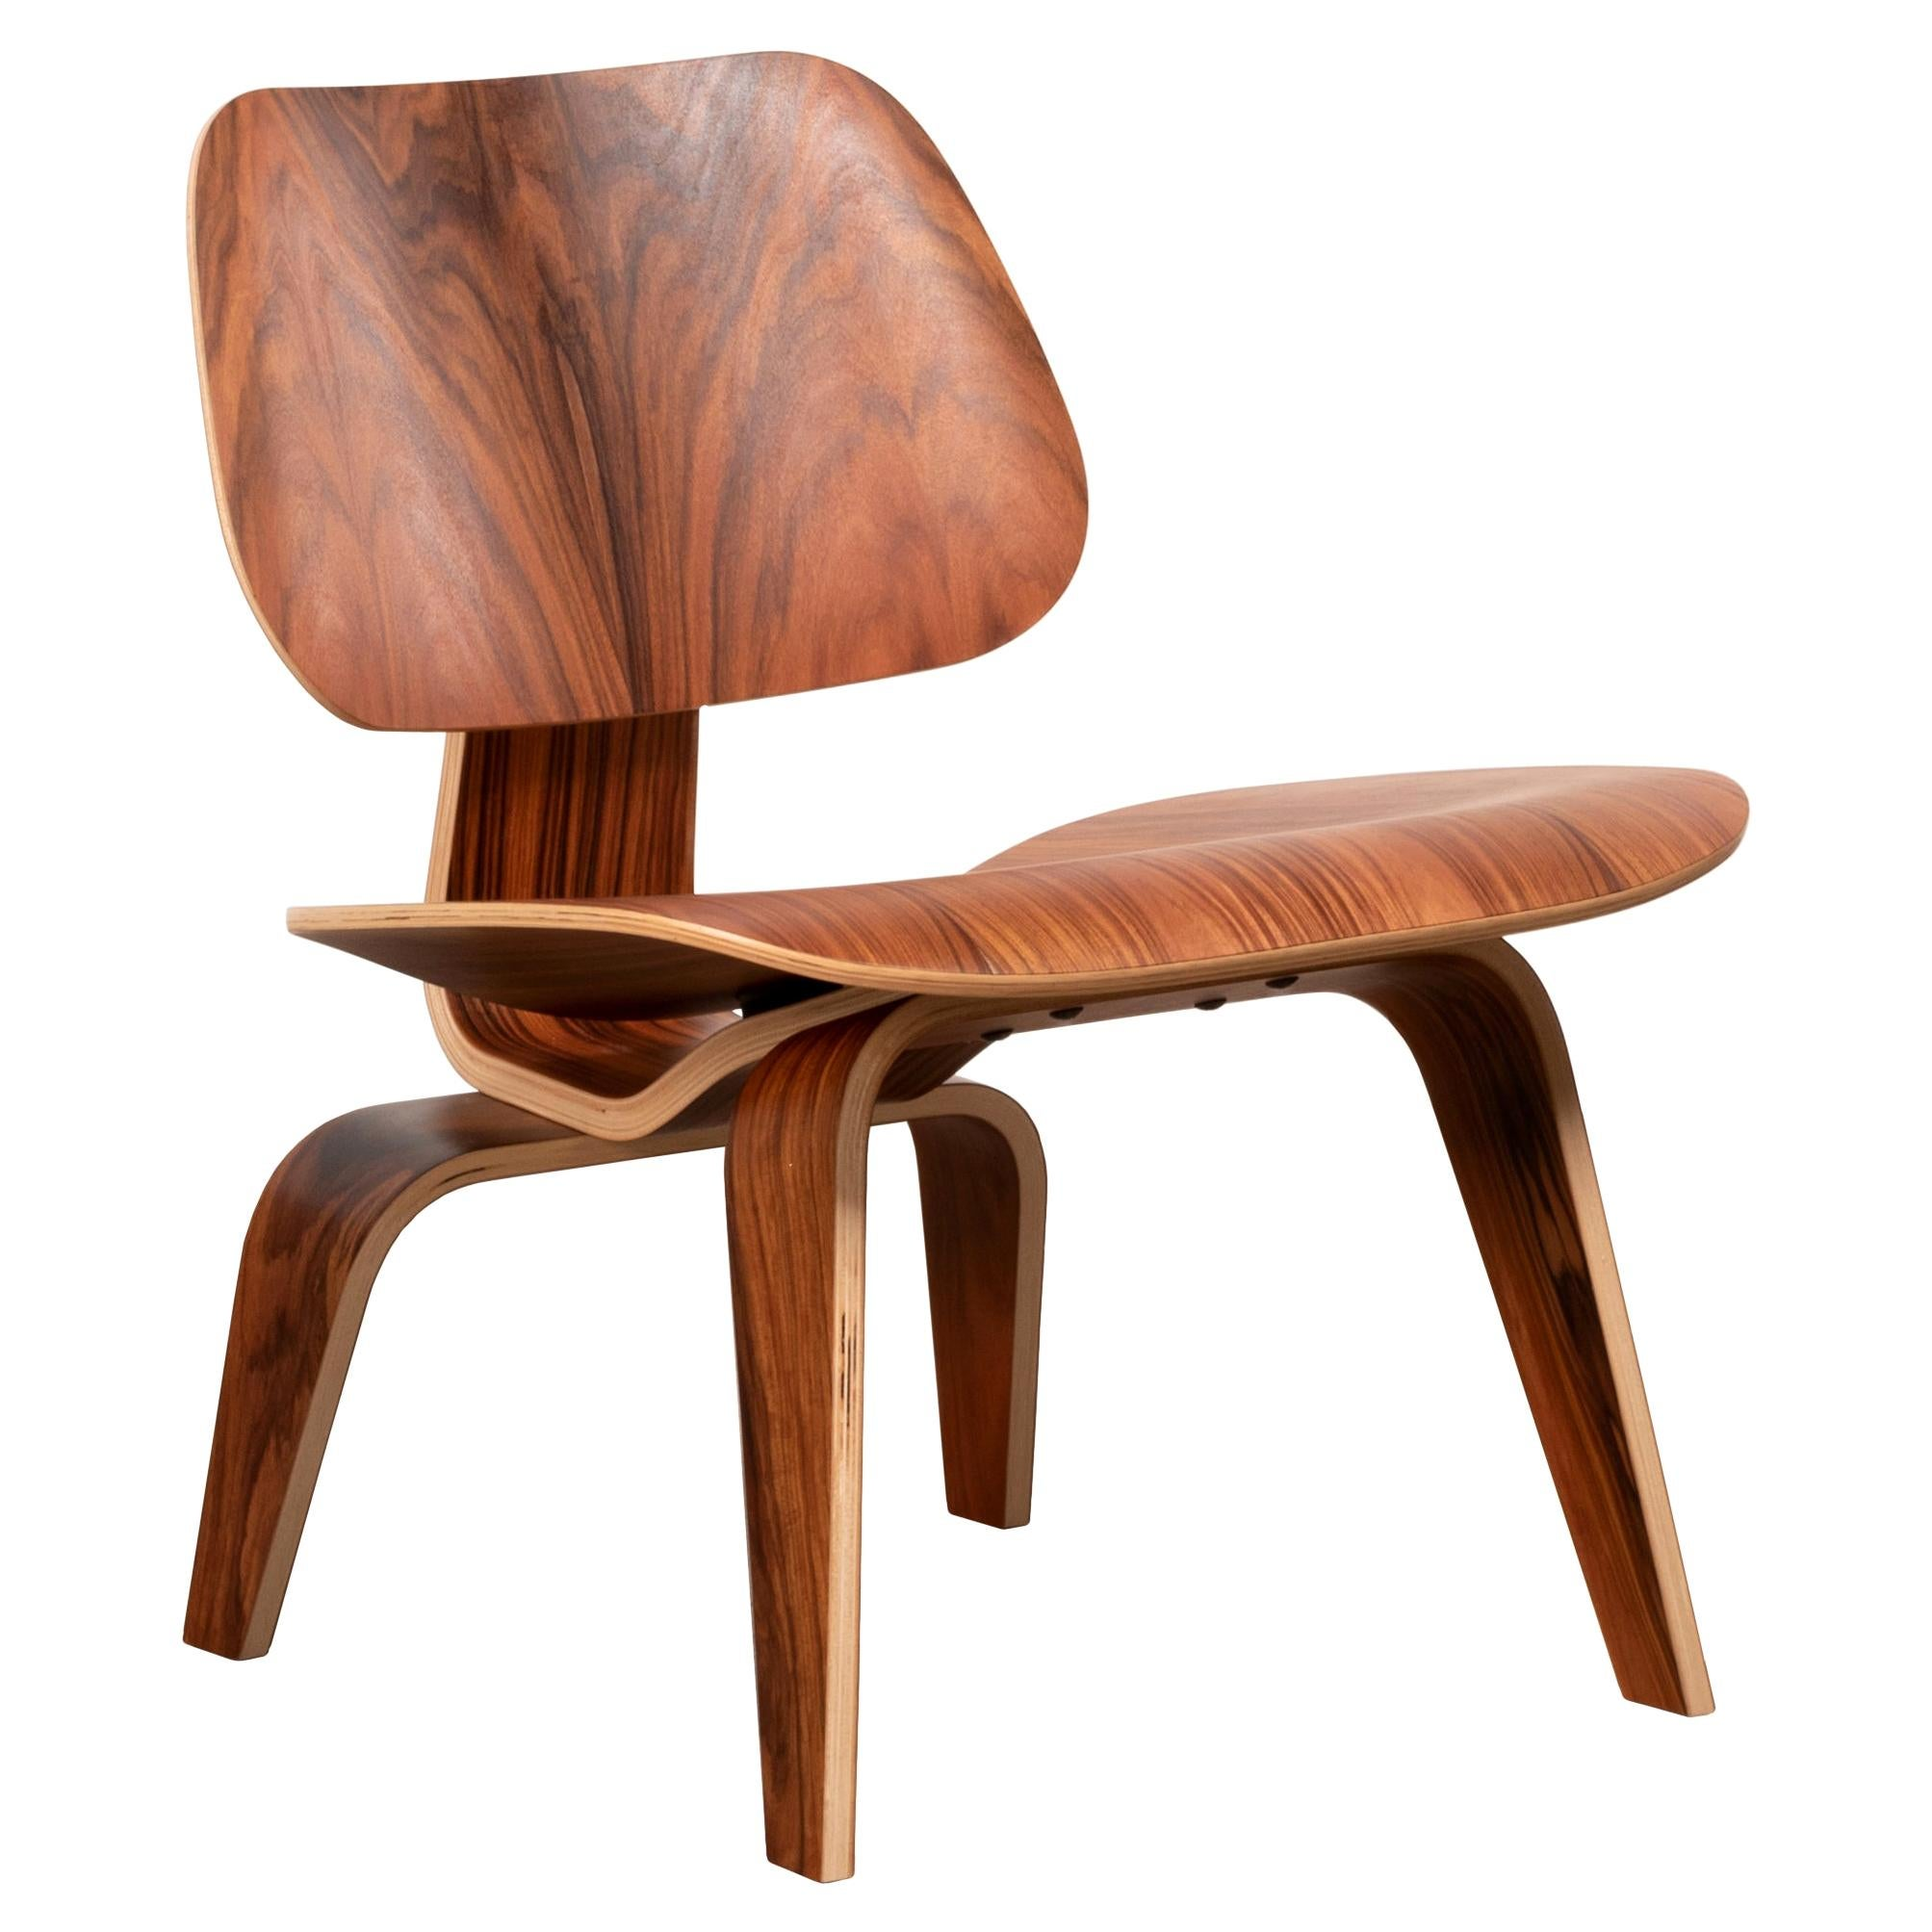 Charles & Ray Eames LCW Santos Palisander Lounge Chair for Herman Miller